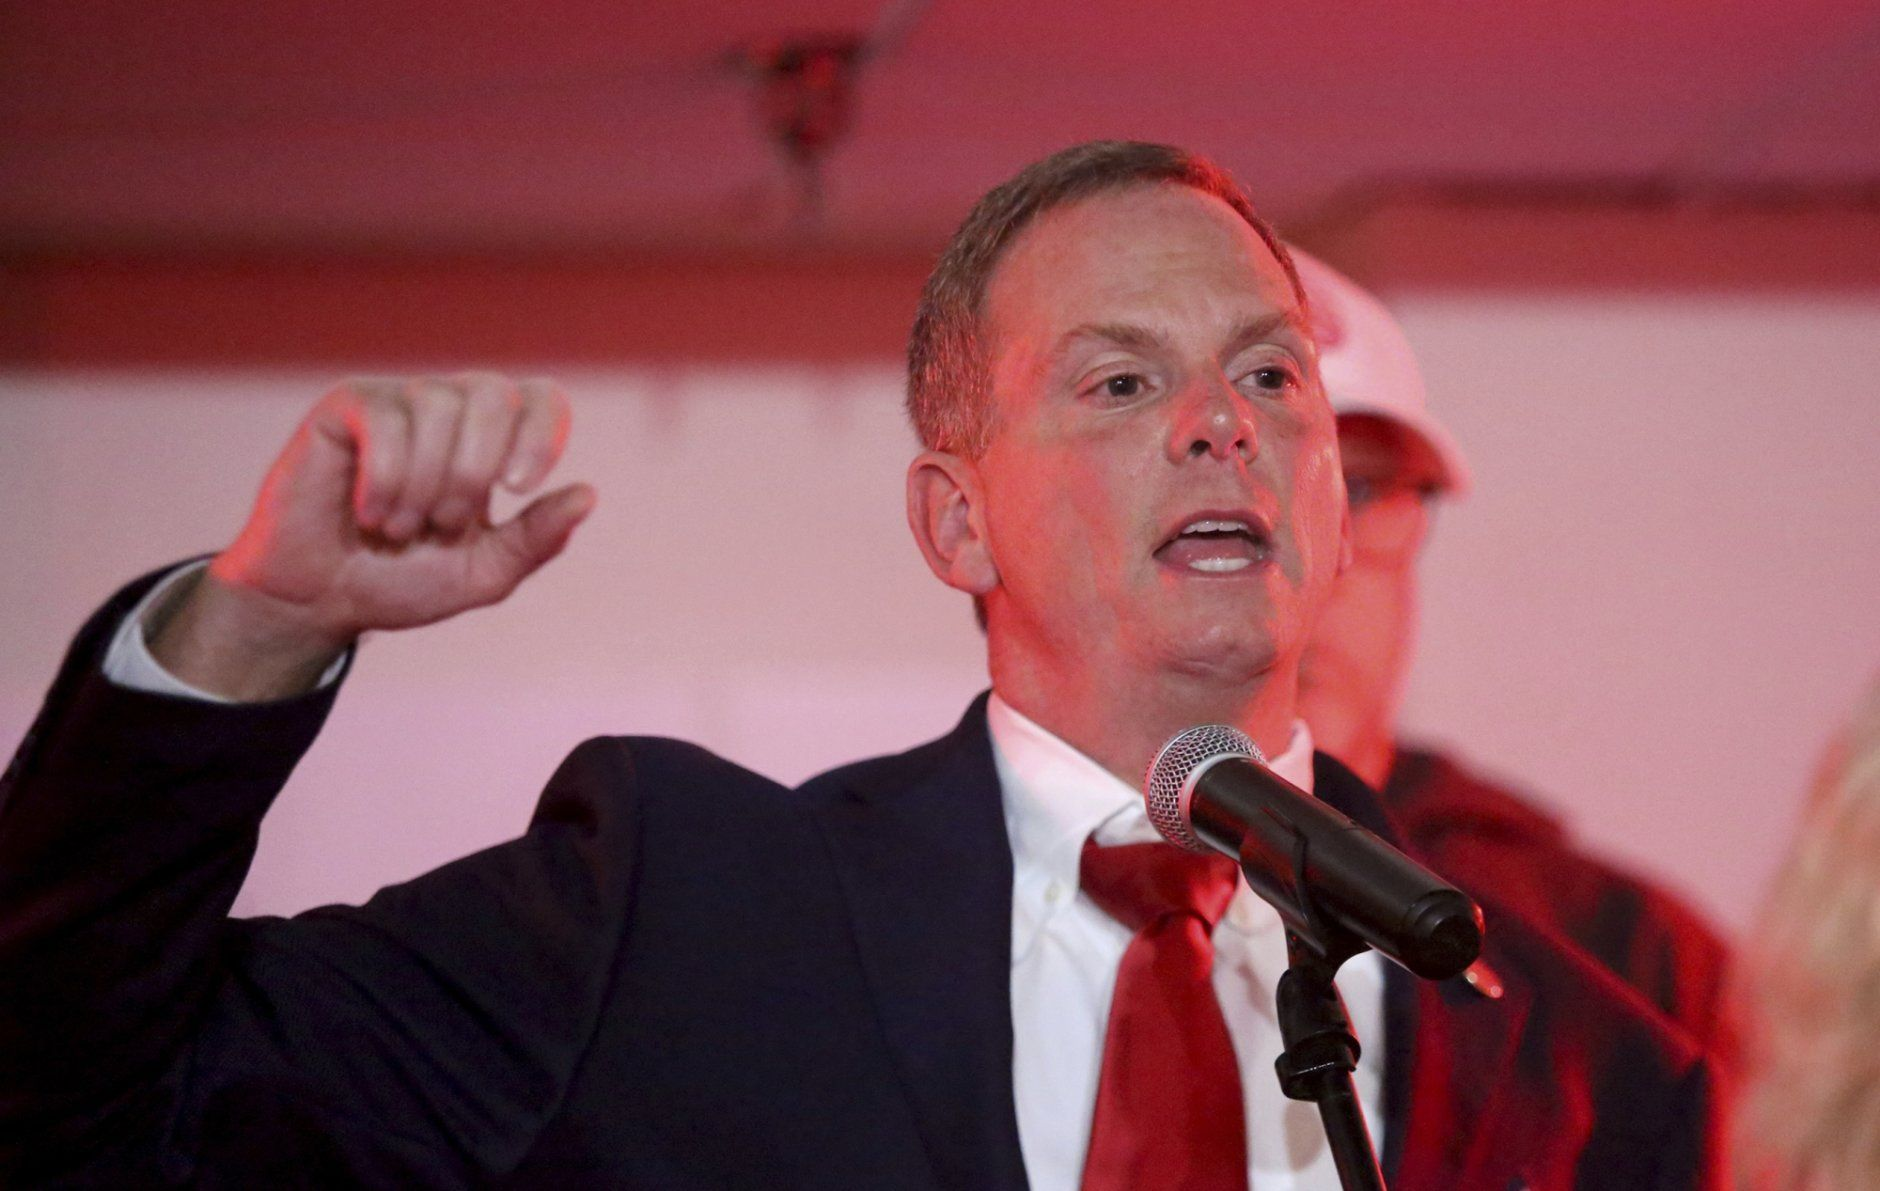 Bill DeSteph claims victory in retaining his seat in the 8th Senate District at the Republican victory party in Virginia Beach, Va., on Tuesday, Nov. 5, 2019. (Steve Earley/The Virginian-Pilot via AP)